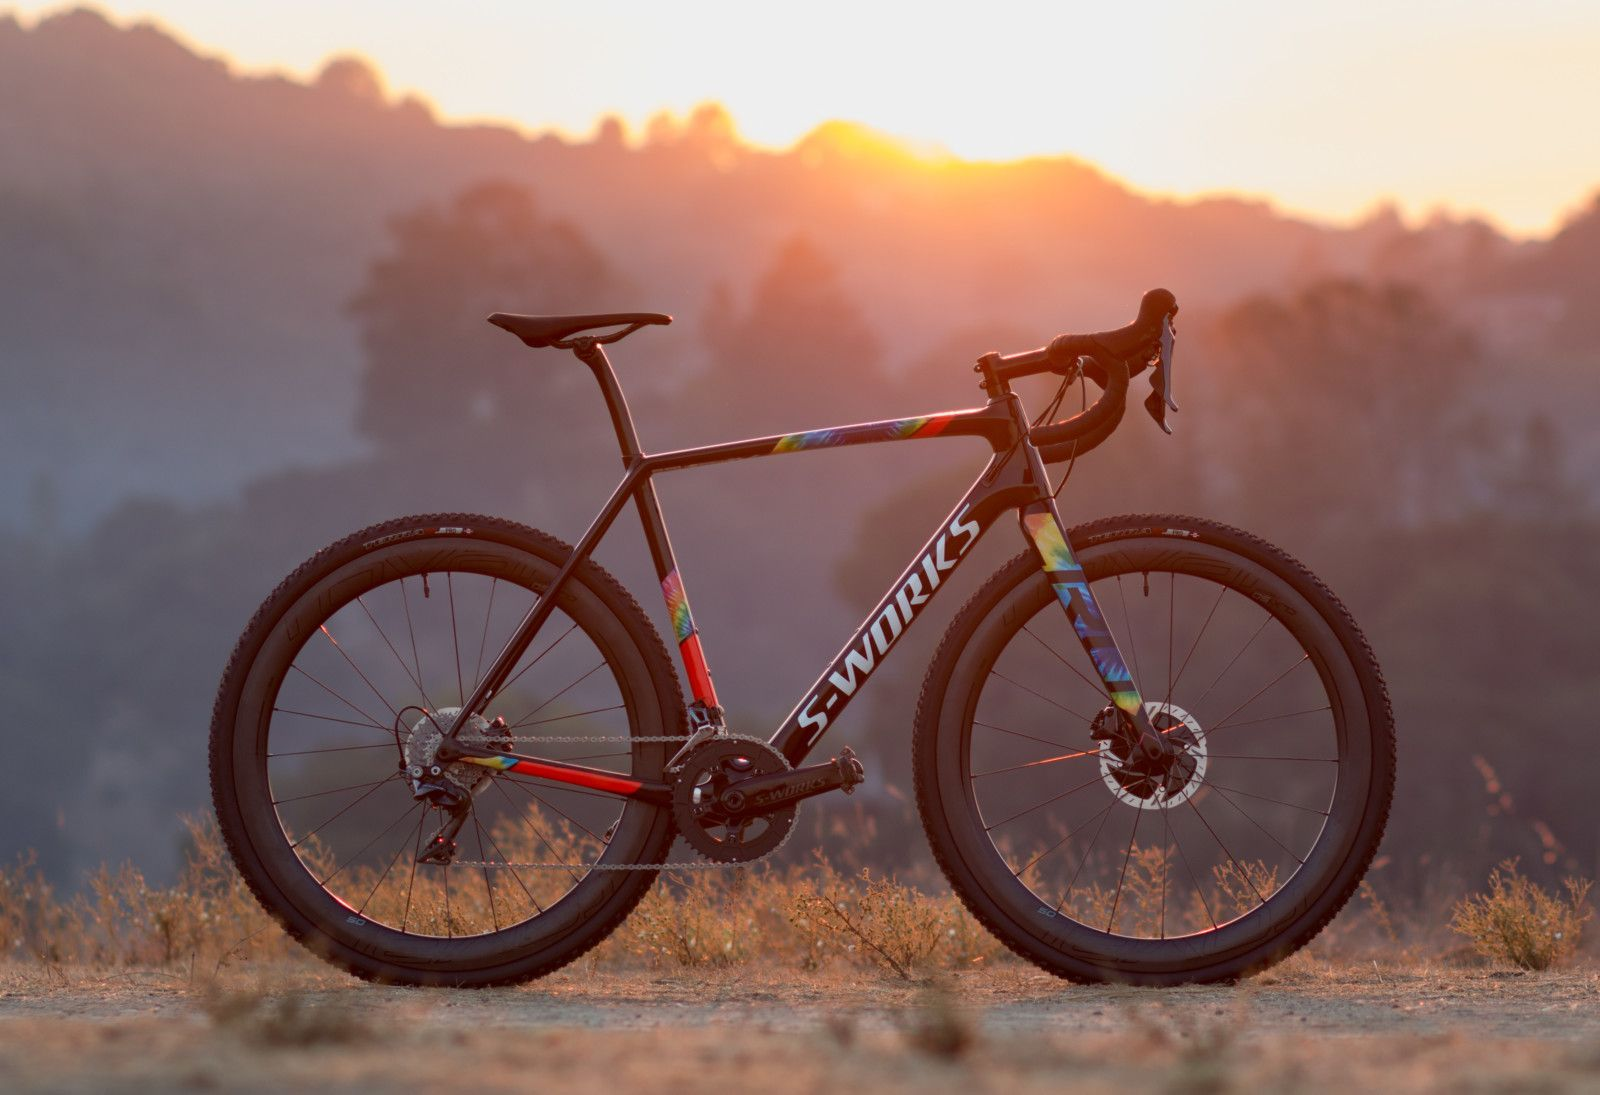 The 2018 Specialized S Works Crux Cyclocross Bike With Shimano